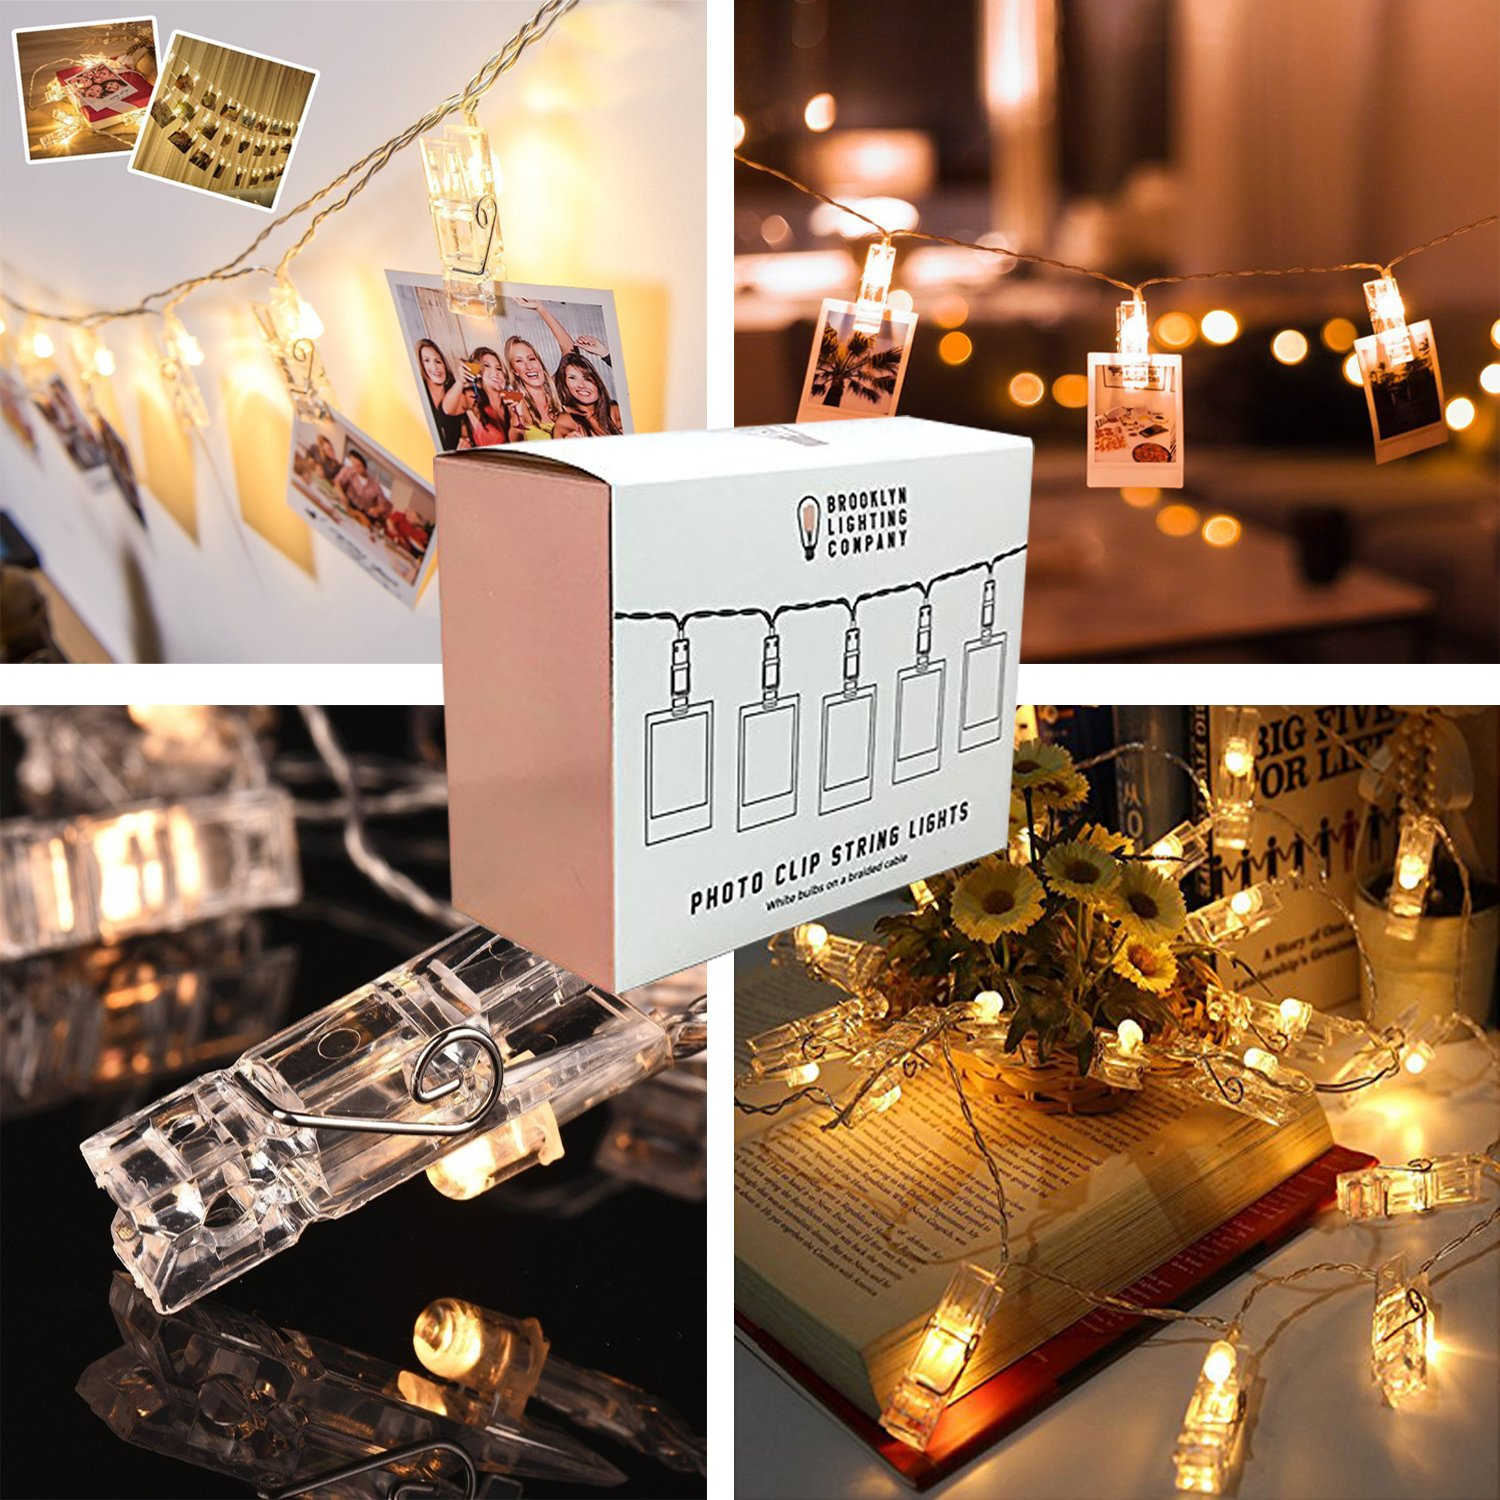 Brooklyn Lighting Company -  Clear Clothes Pin LED String Lights, Decorative String Lights, Battery Operated String Lights, Party Decor Supplies for Indoor/Outdoor